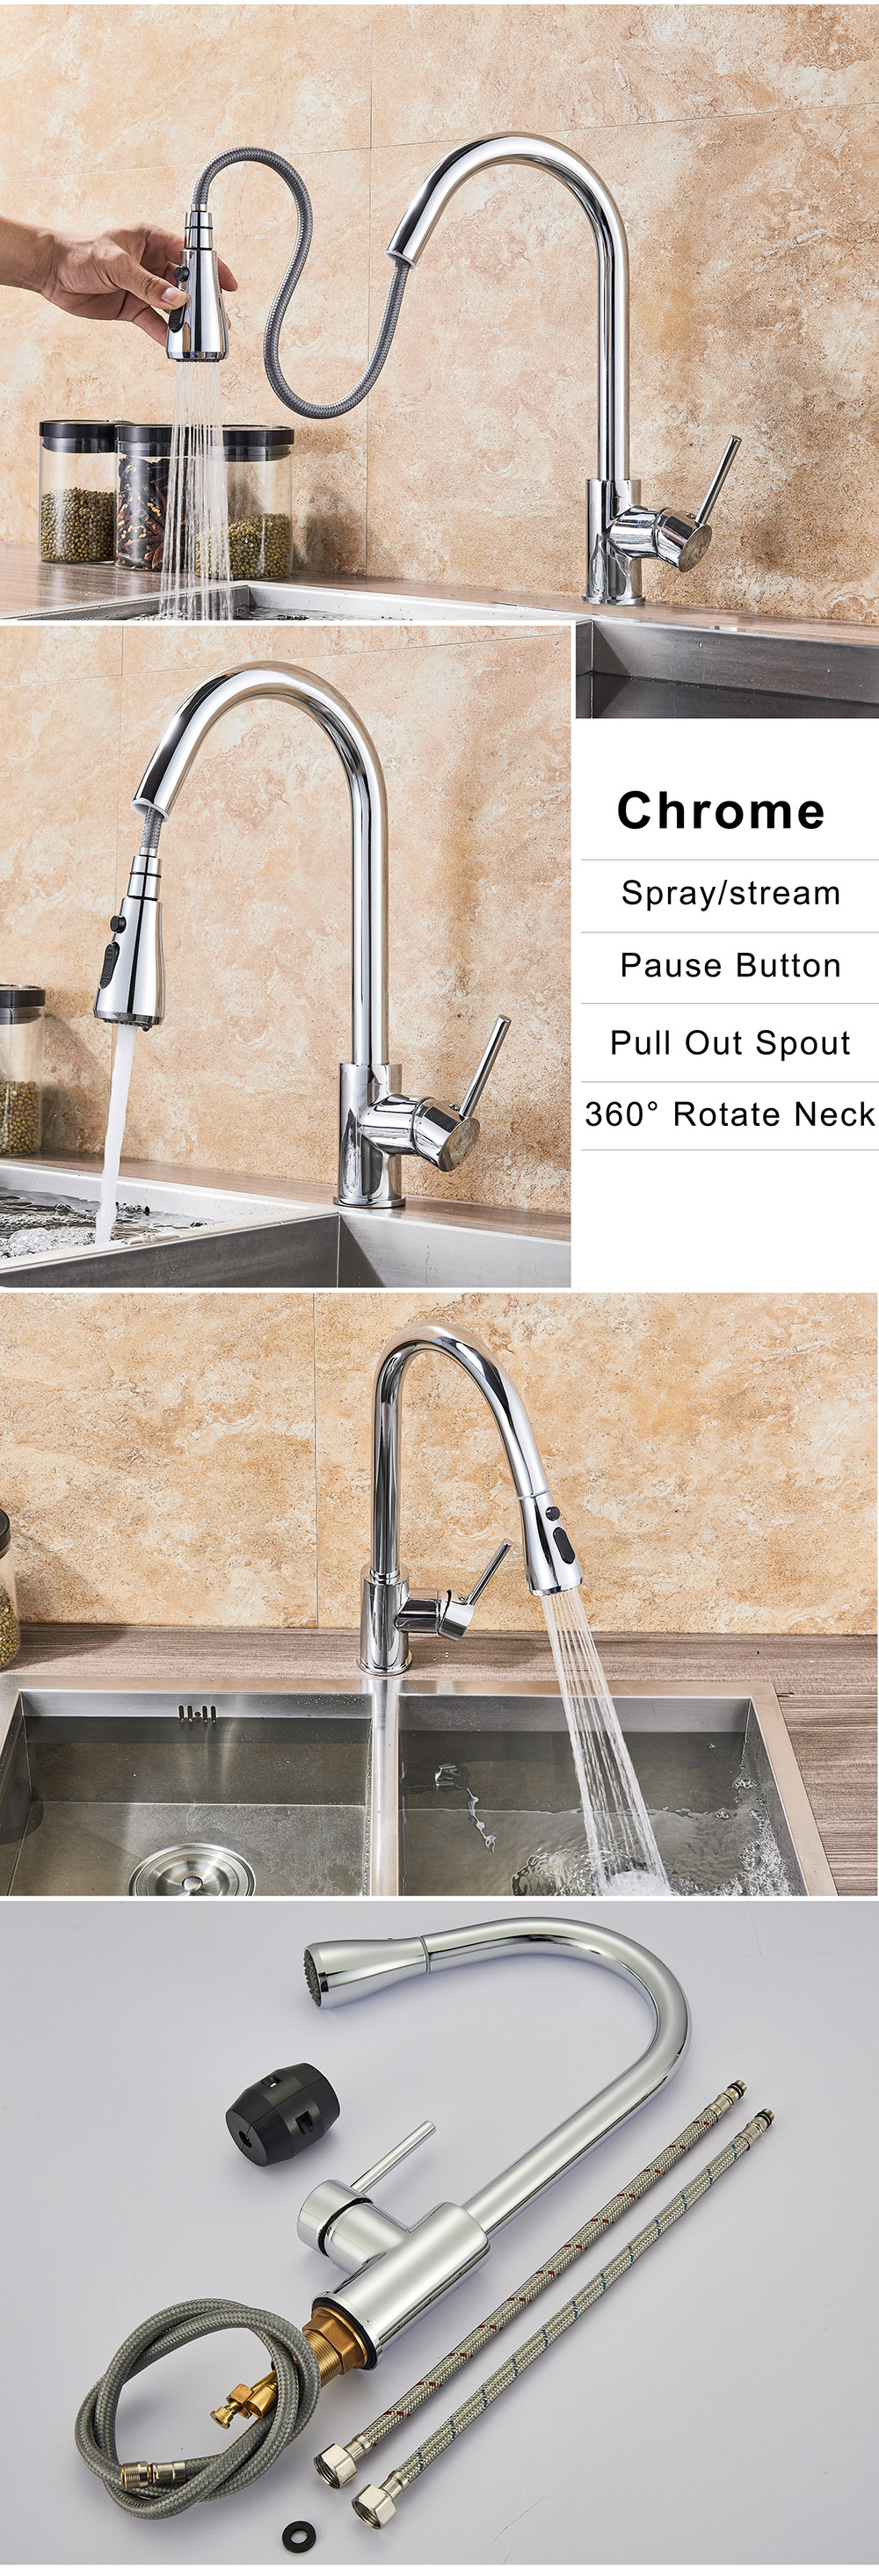 Hc4048dd91a94413195352853833afc74a Rozin Brushed Nickel Kitchen Faucet Single Hole Pull Out Spout Kitchen Sink Mixer Tap Stream Sprayer Head Chrome/Black Mixer Tap